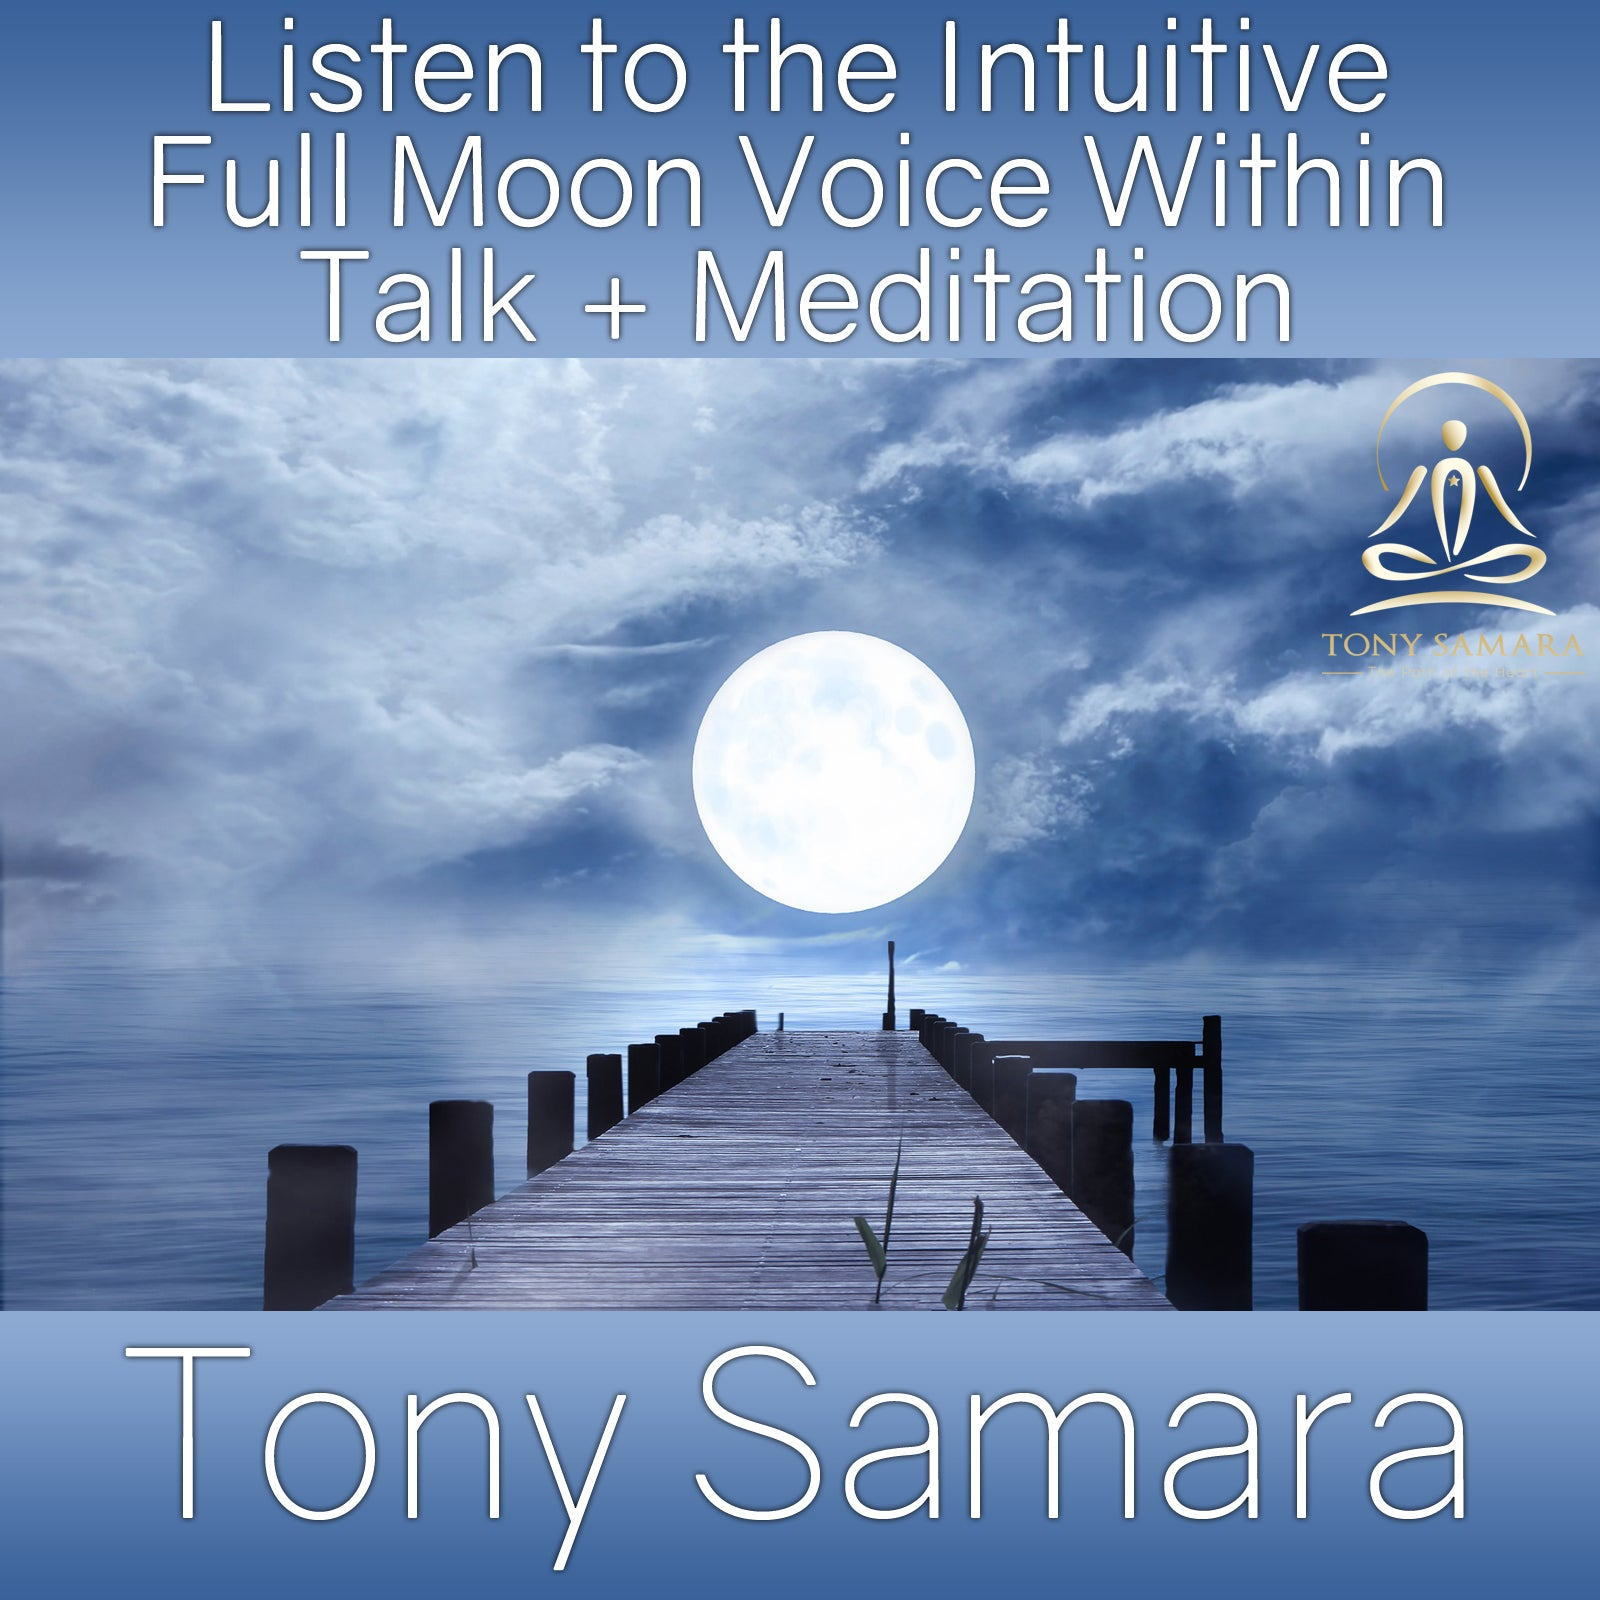 Listen to the Intuitive Full Moon Voice Within Talk + Meditation (MP3 Audio Download) - Tony Samara Meditation